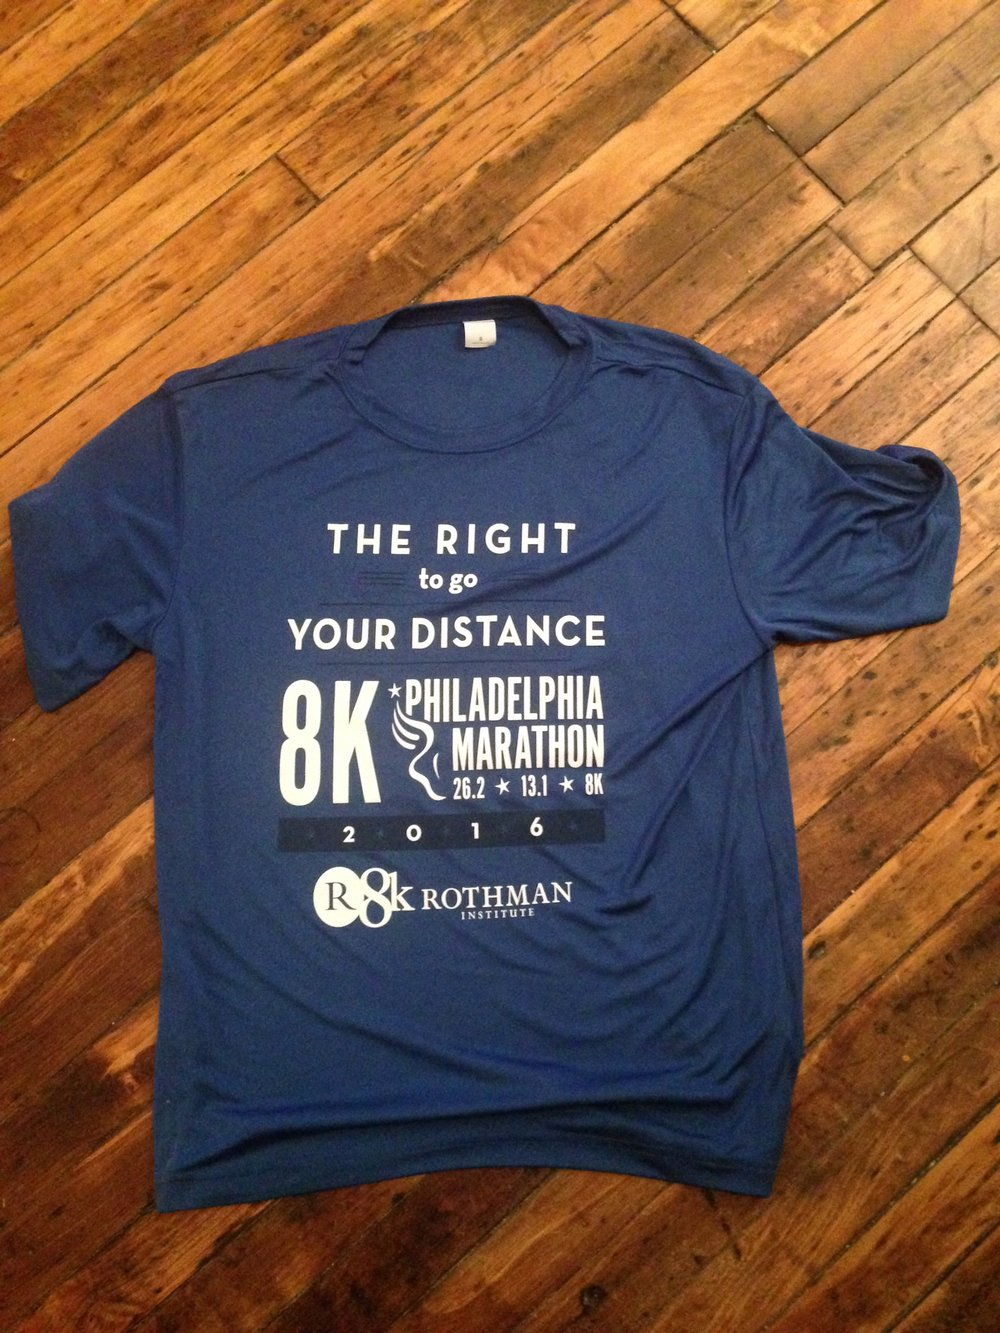 Rothman 8K shirt front – a nice tech shirt – too bad it's too big on me.